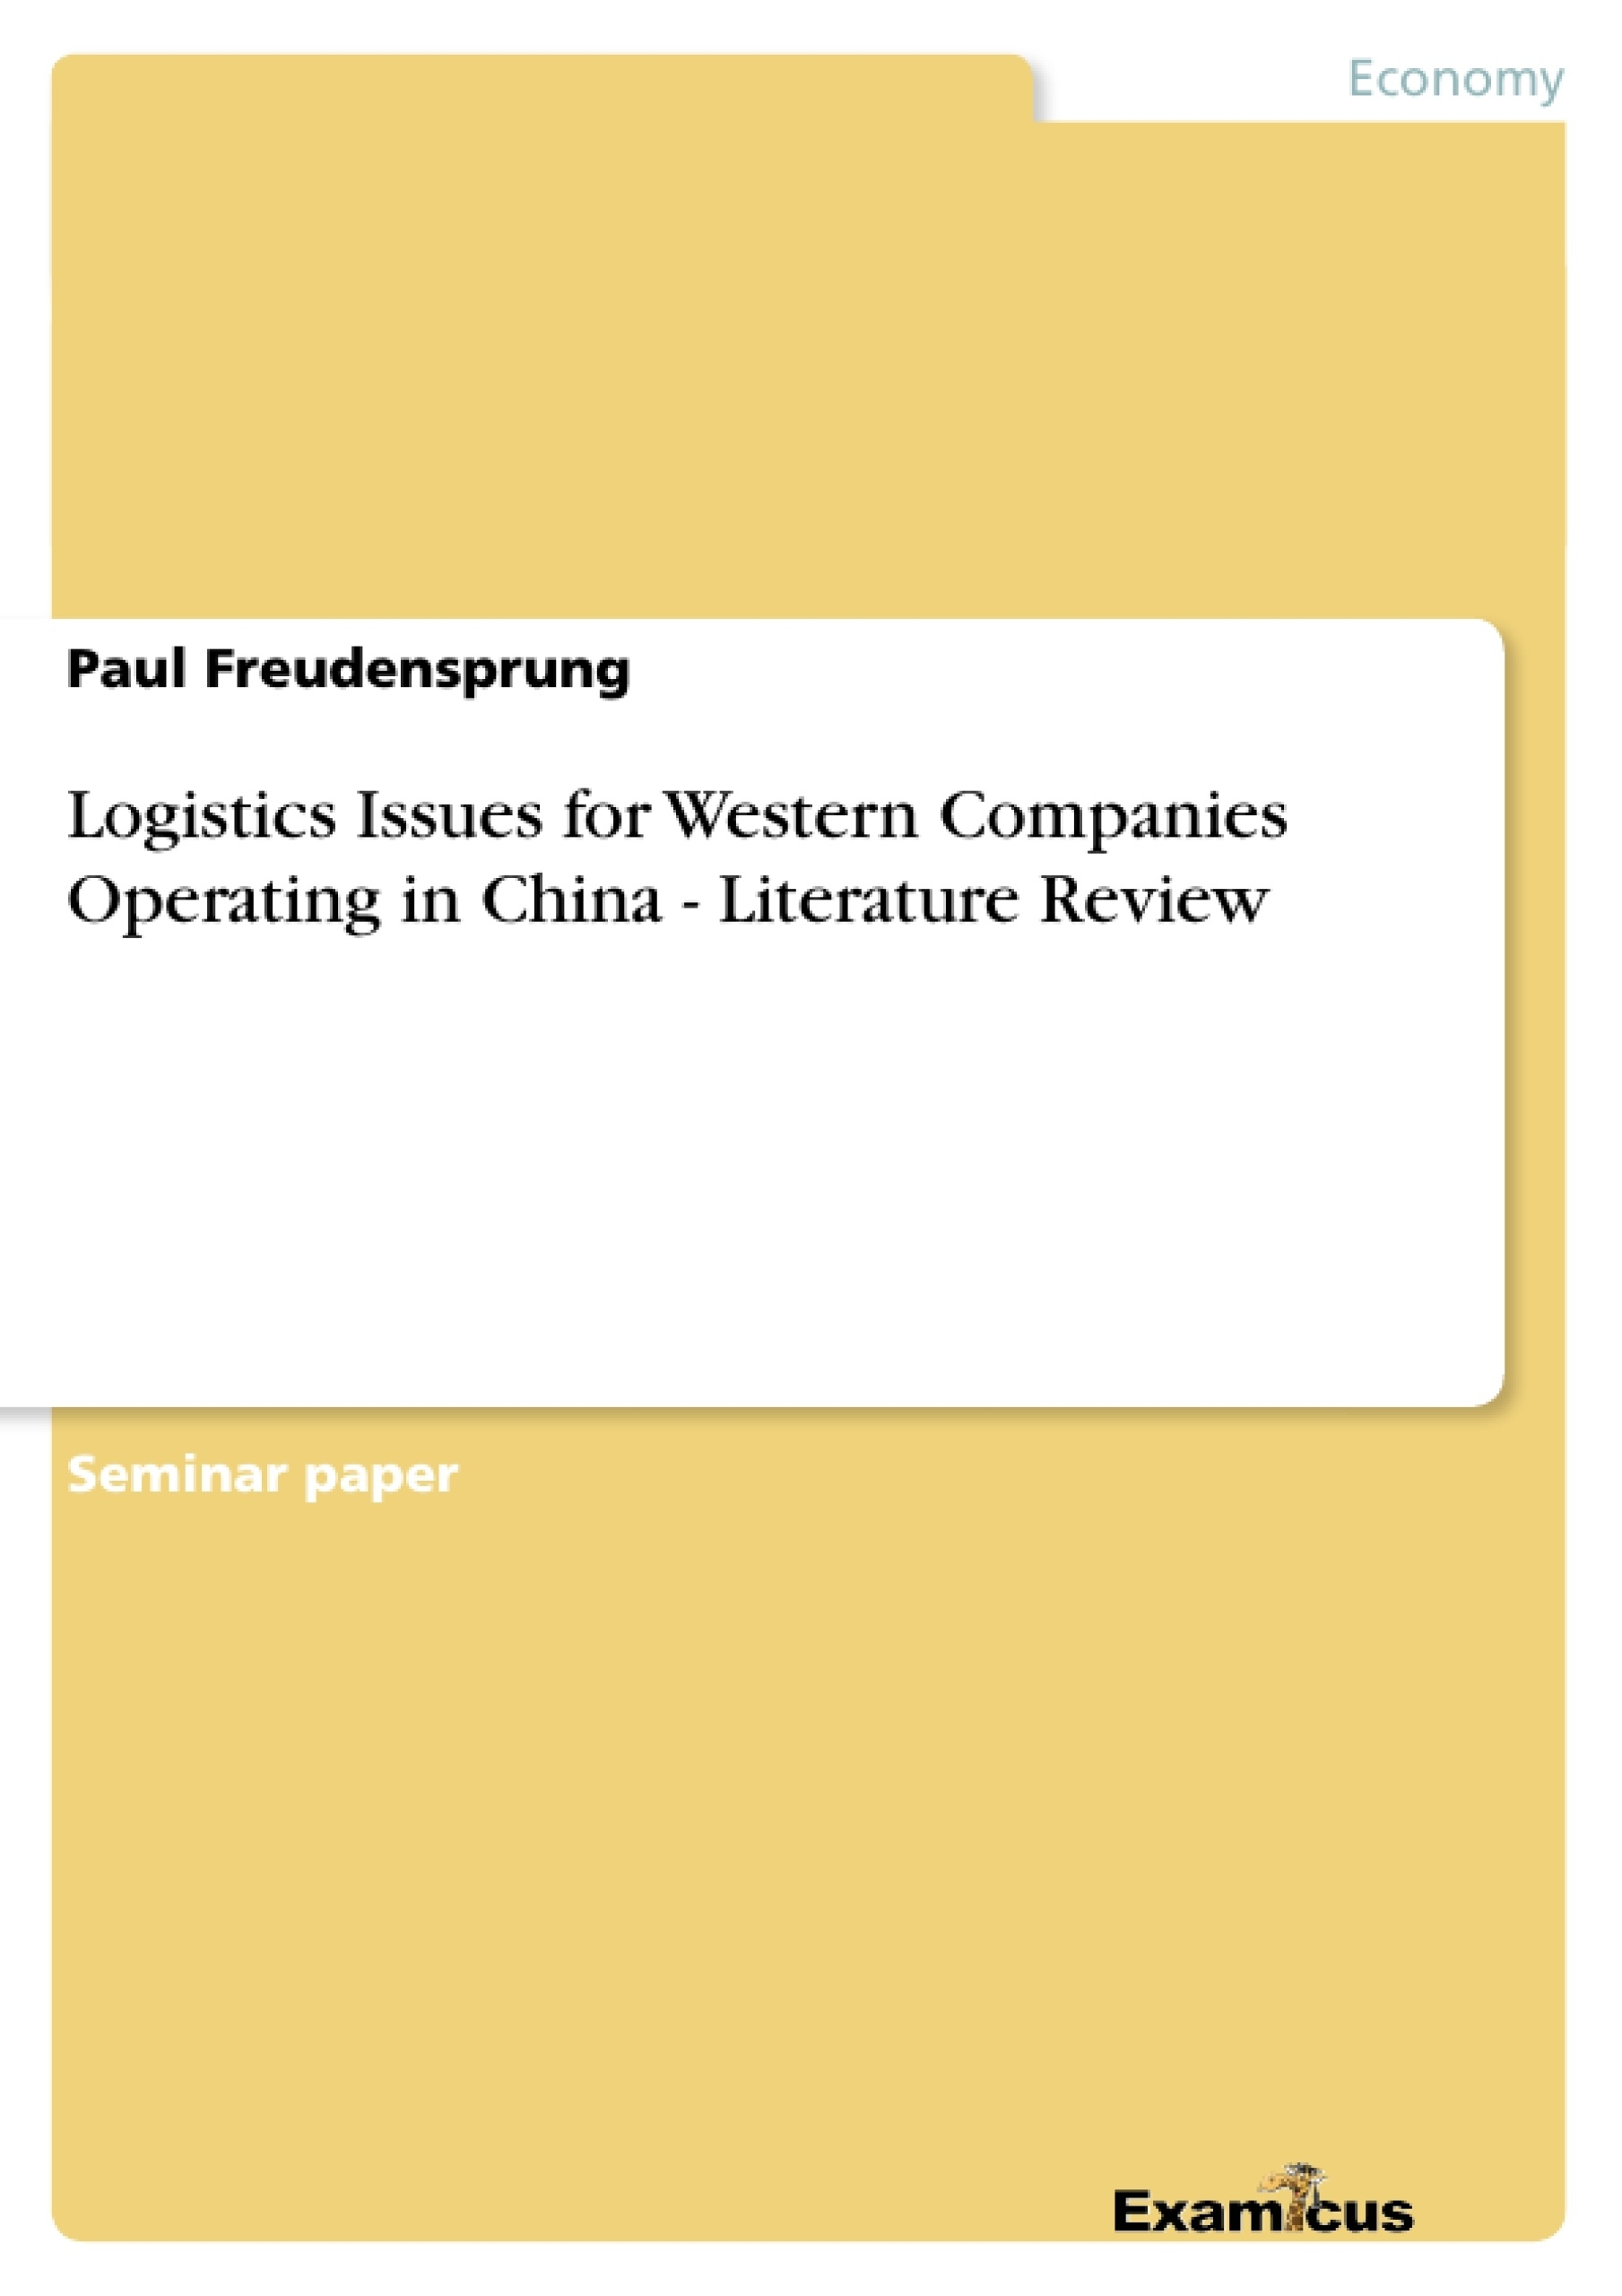 Title: Logistics Issues for Western Companies Operating in China - Literature Review